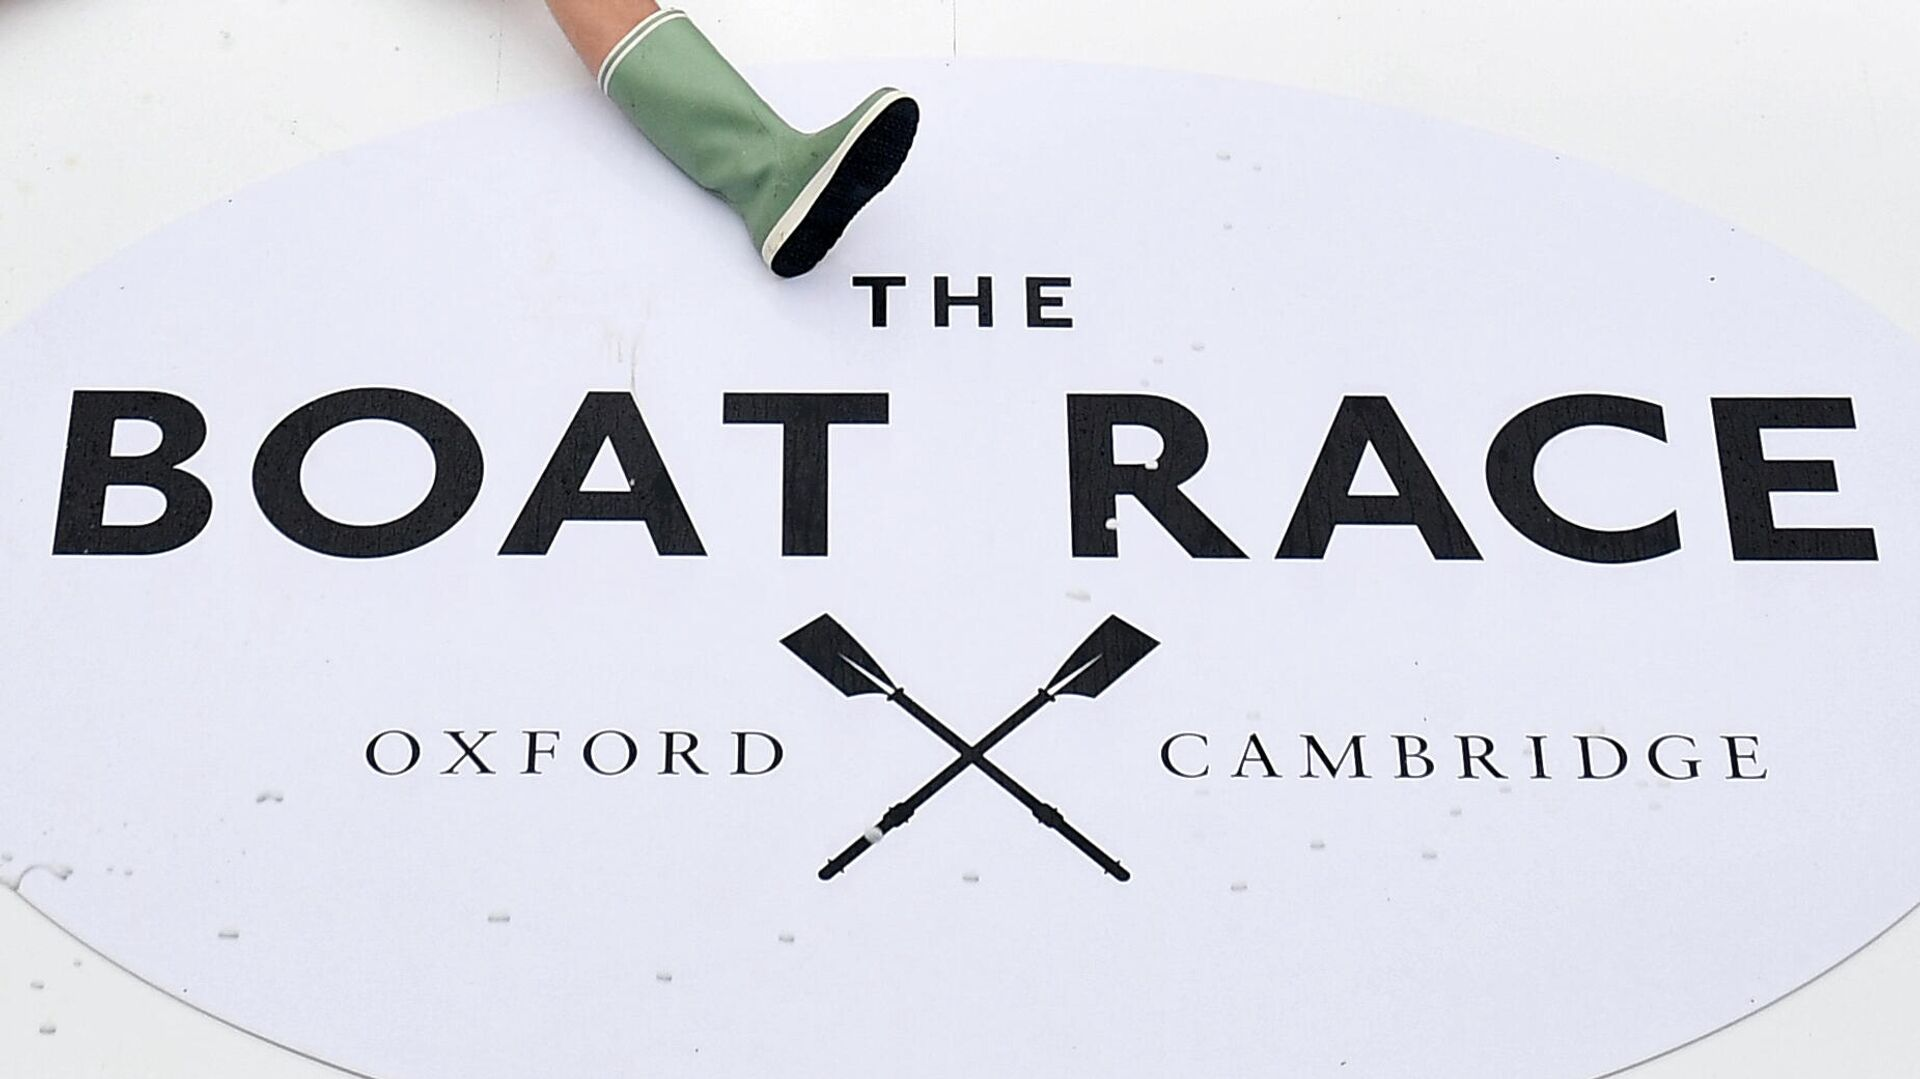 Beside the branding, members of all the Cambridge boat crews celebrate together after Cambridge win all the races on the day of the 165th annual men's boat race between Oxford University and Cambridge University on the River Thames in London on April 7, 2019. (Photo by Daniel LEAL-OLIVAS / AFP) - РИА Новости, 1920, 26.11.2020